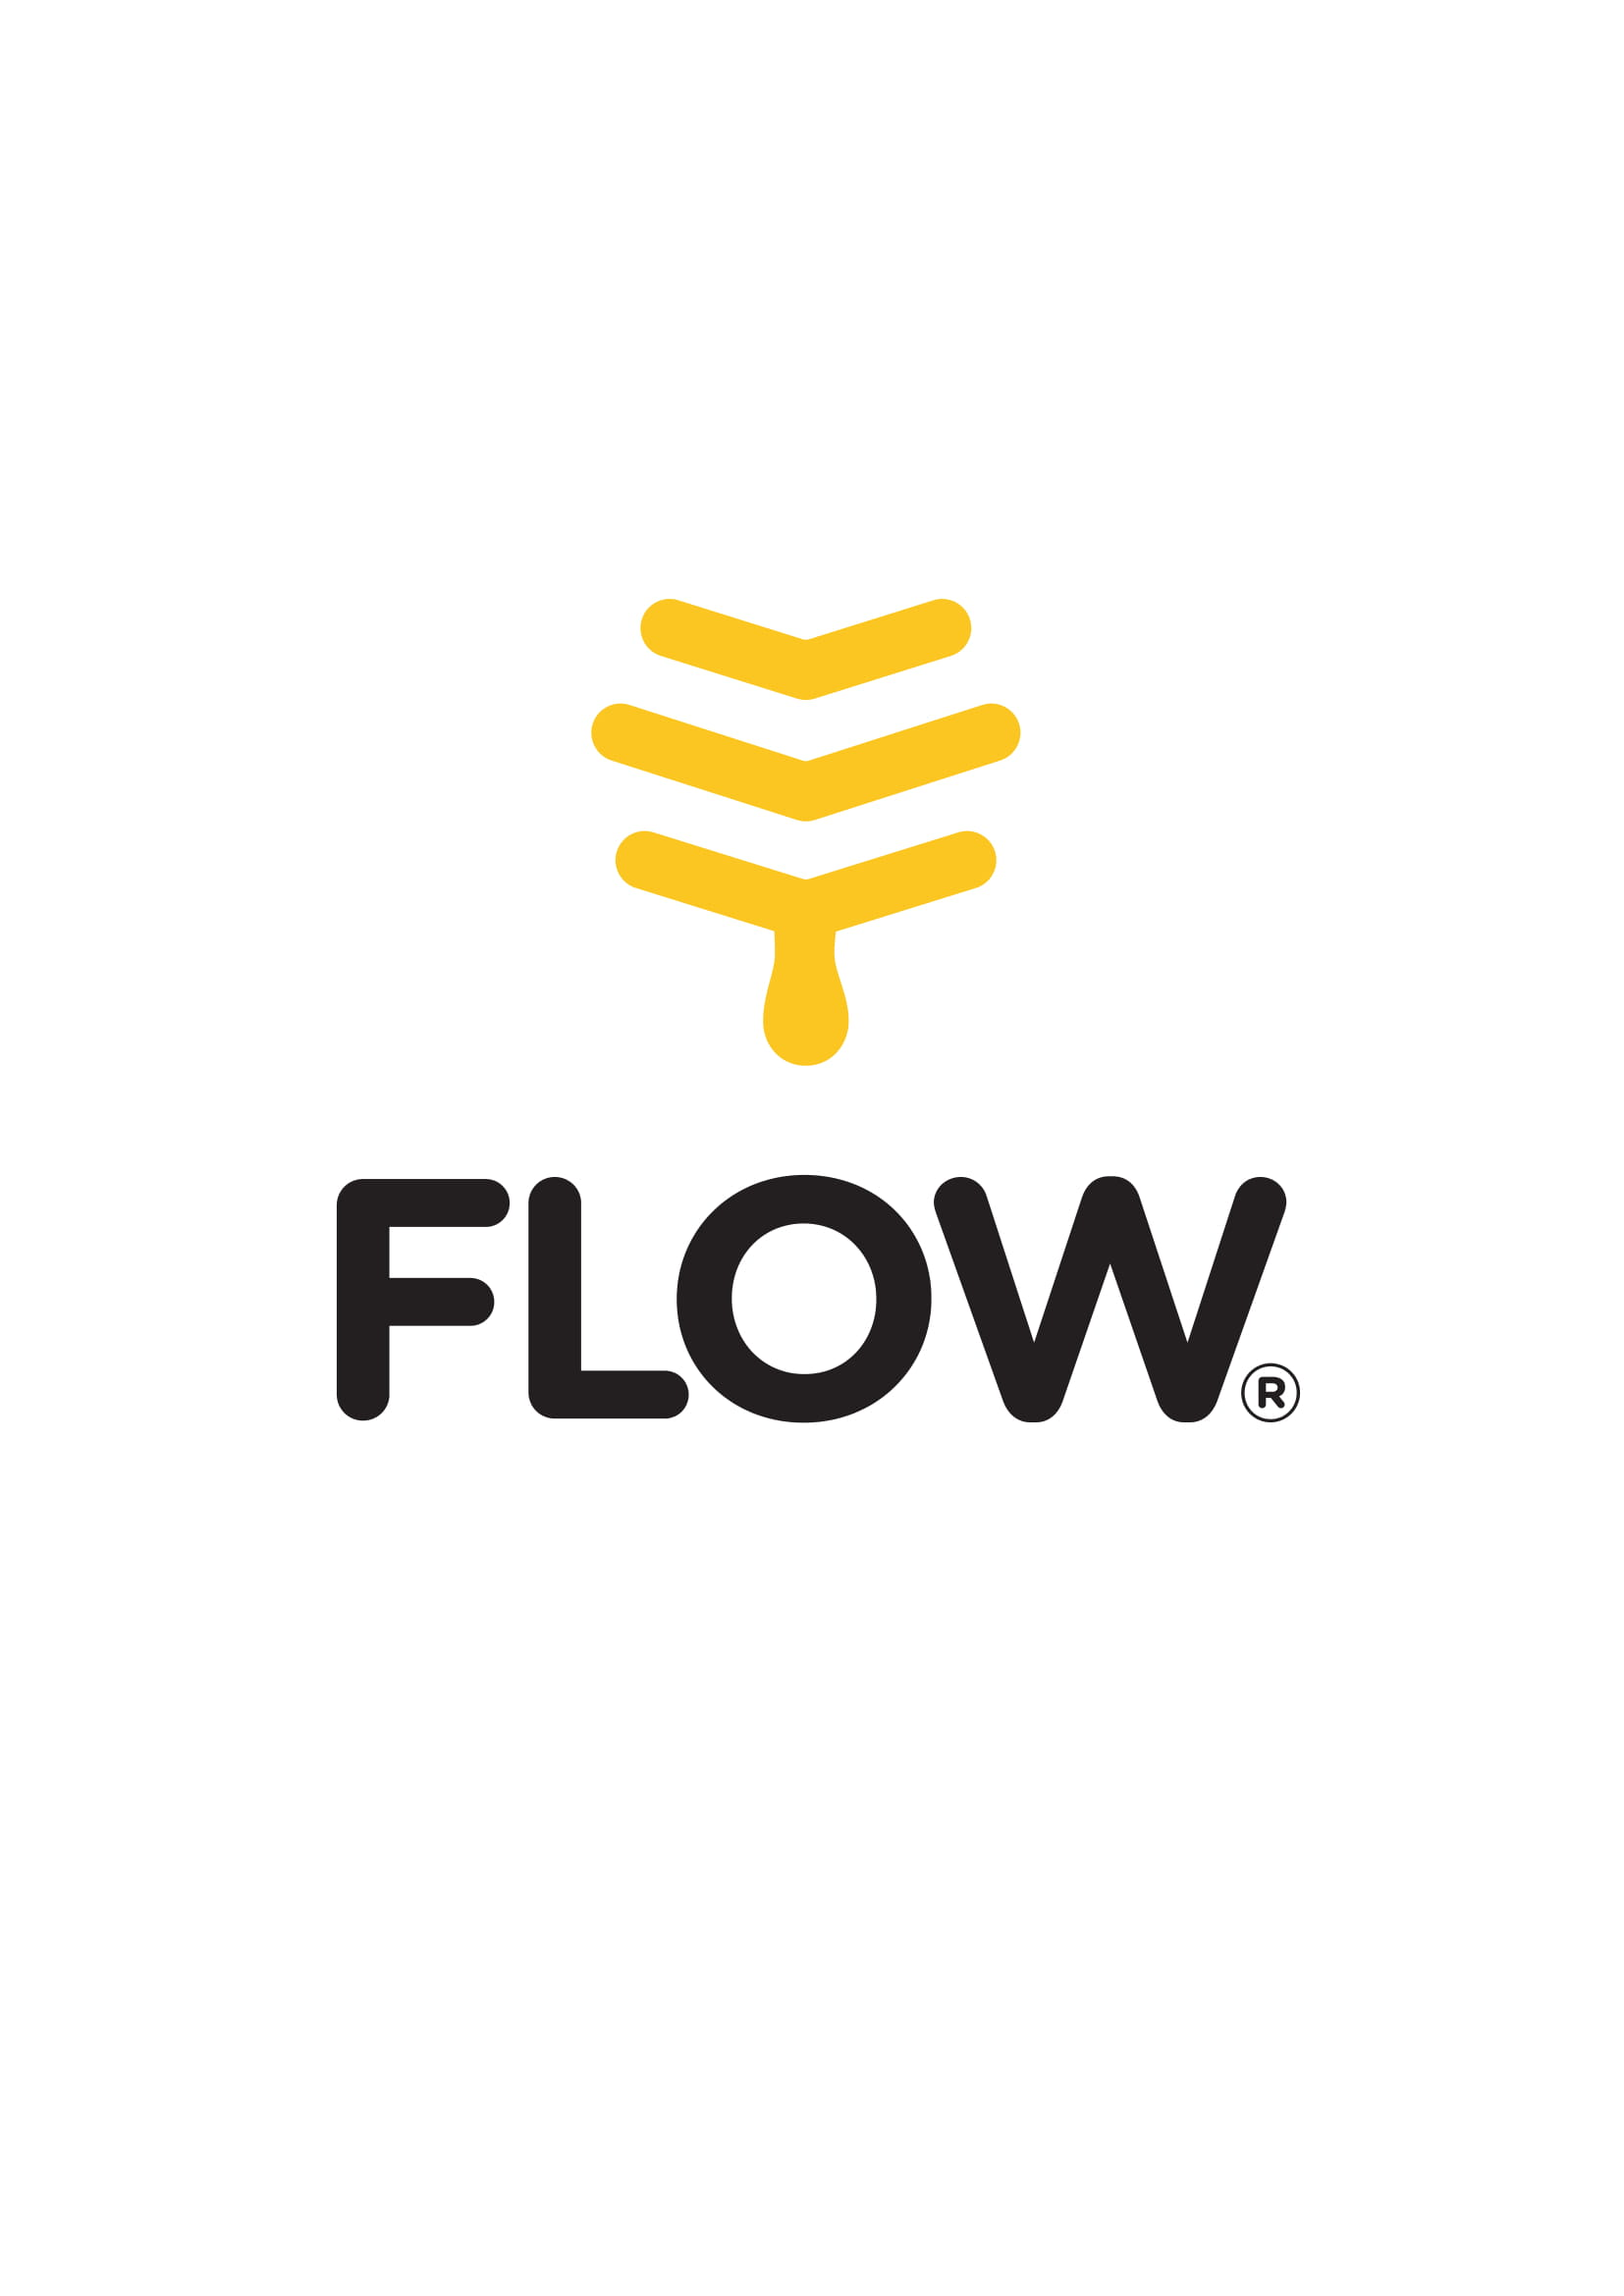 Logo for Flow Hive (BeeInventive Pty Ltd)